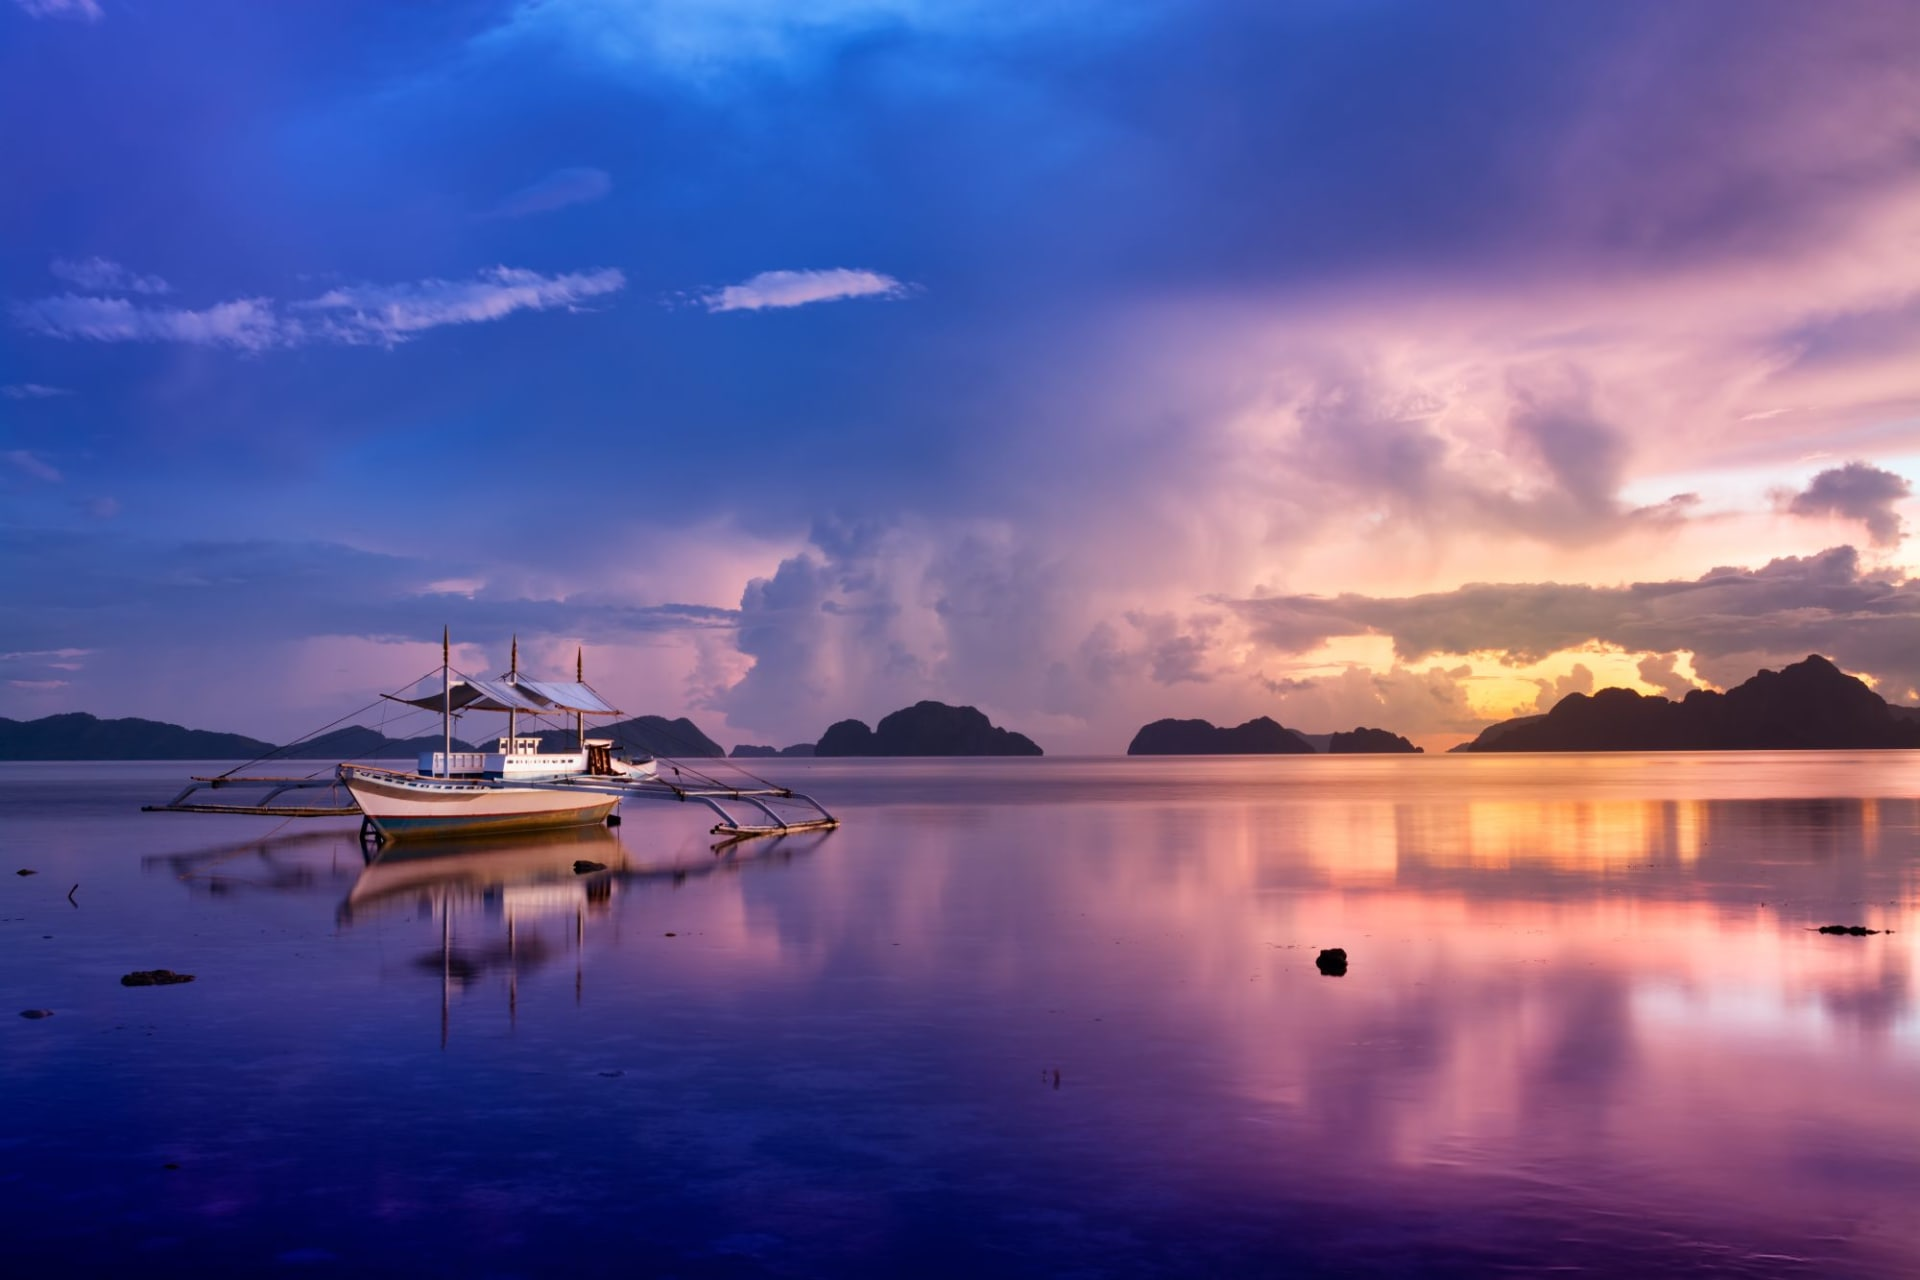 Palawan El Nido tropical sunset with a banca boat